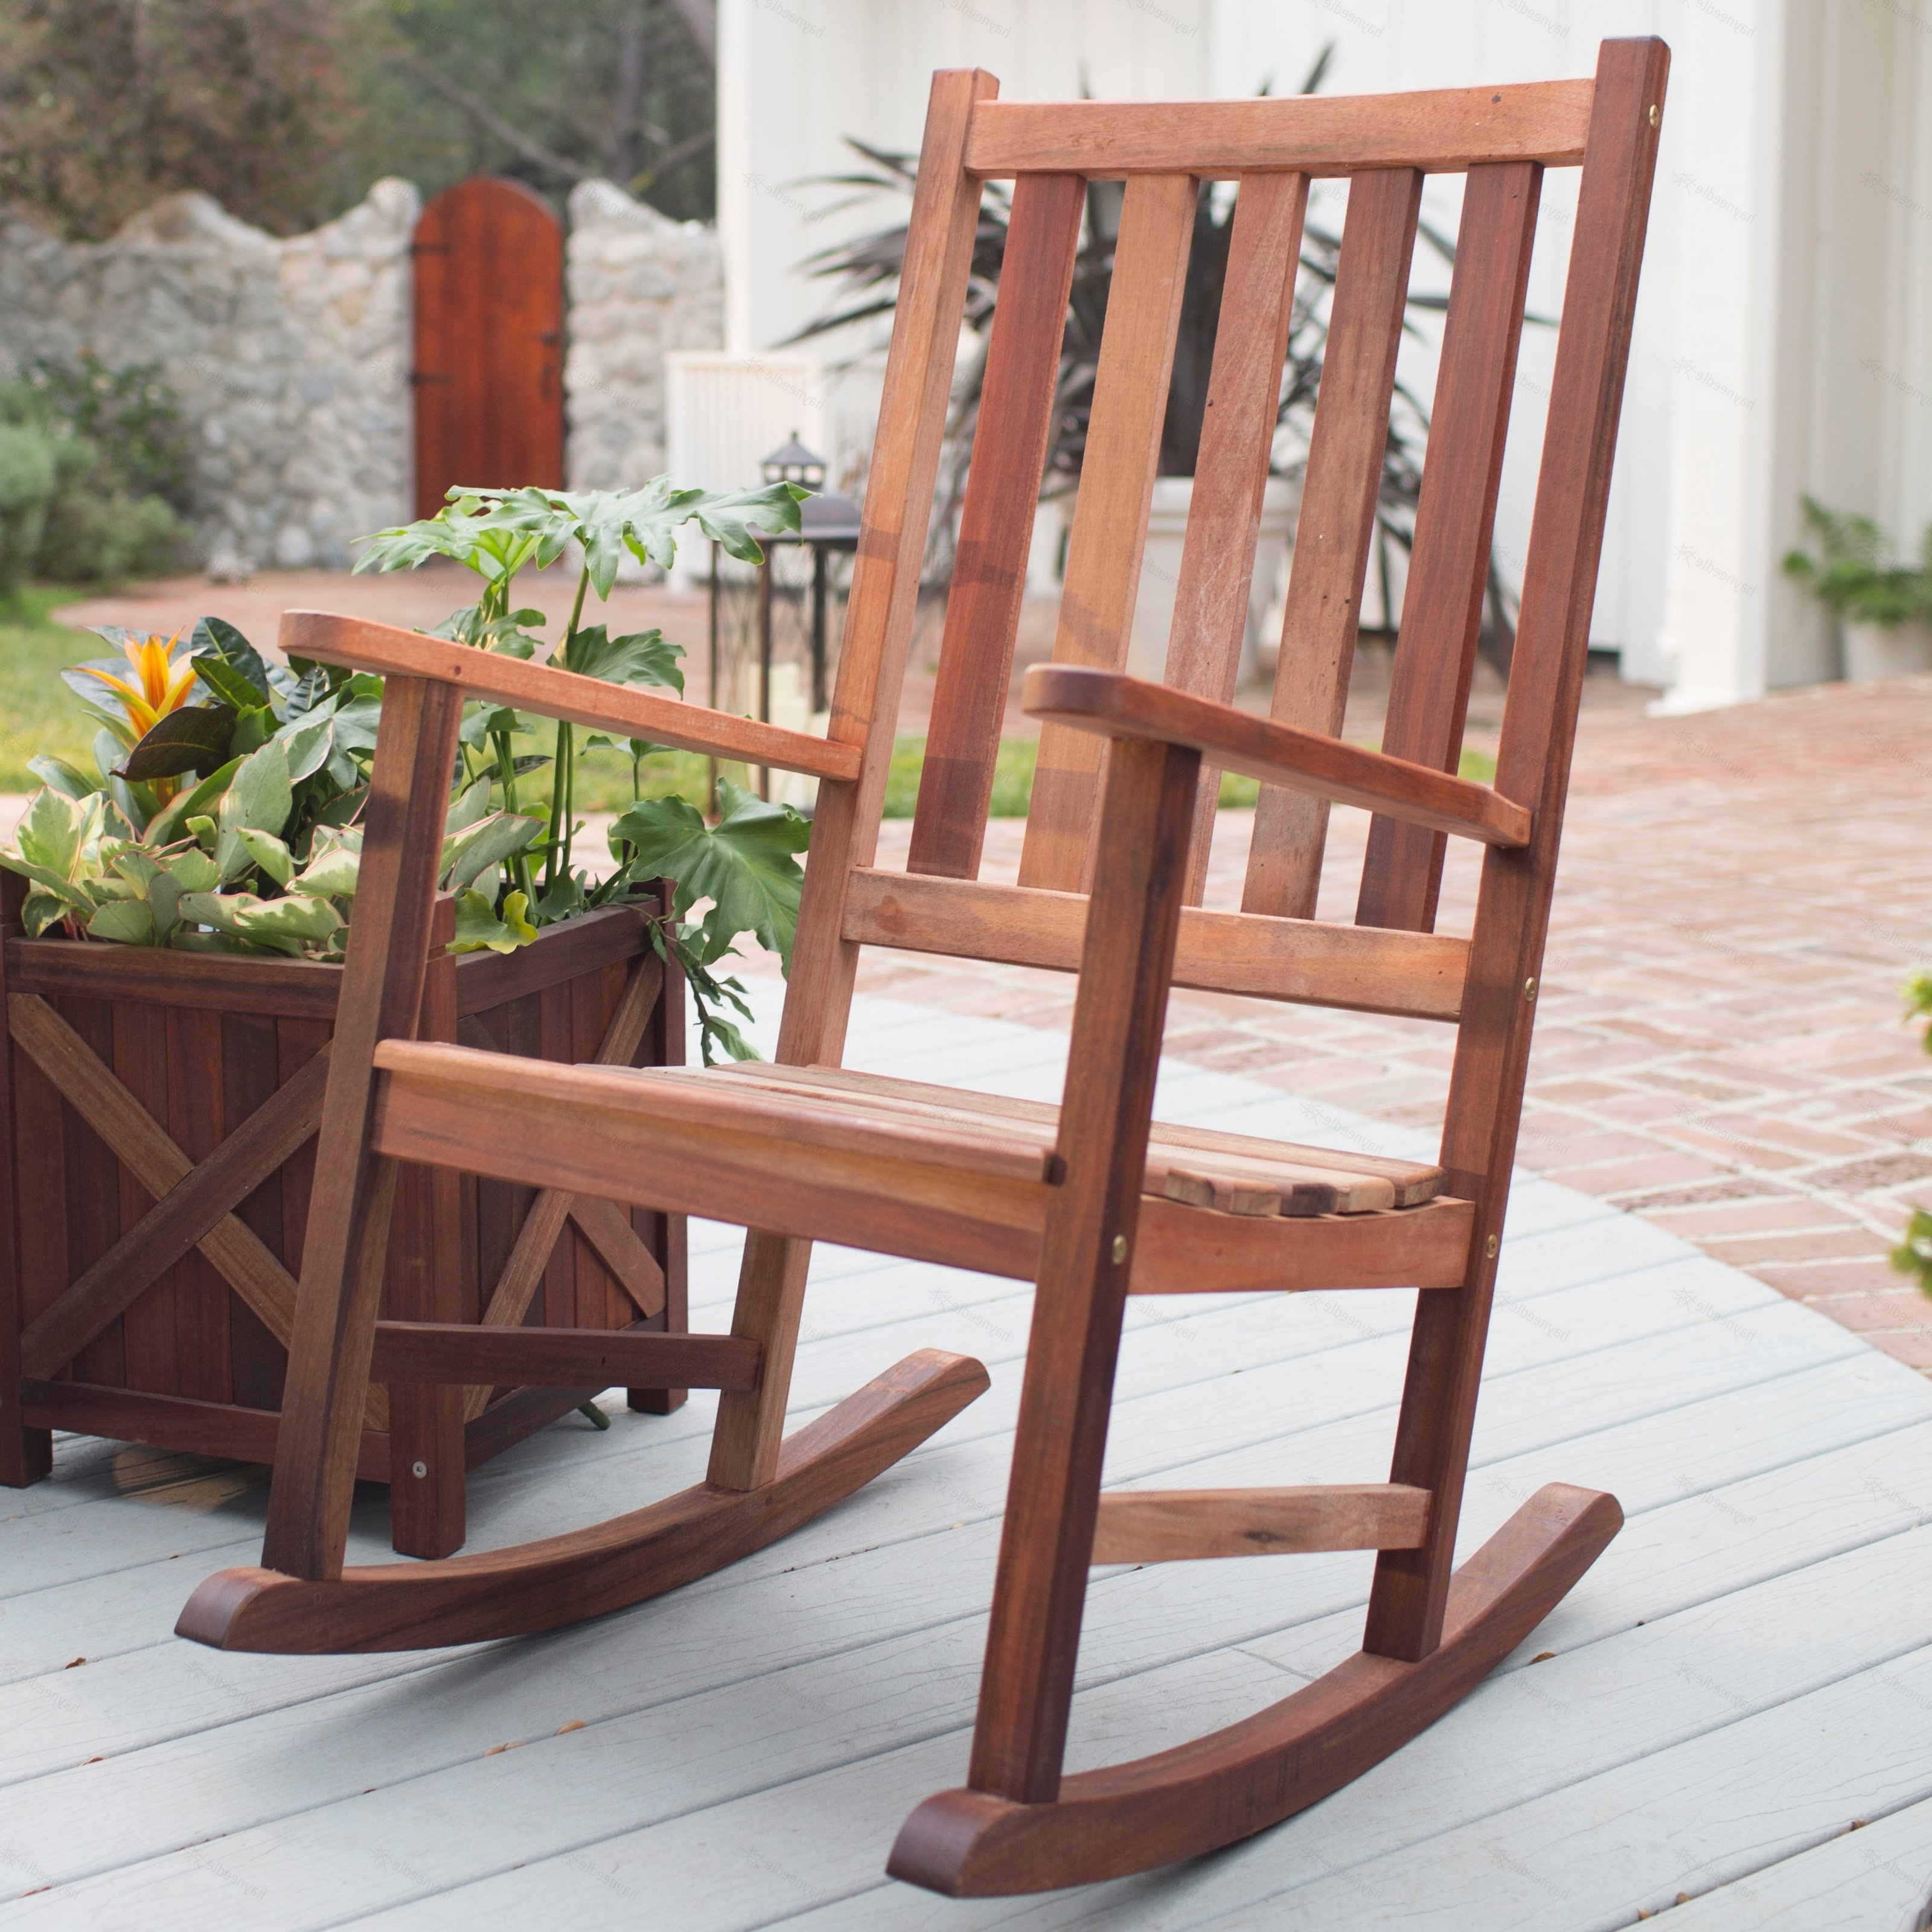 Famous Rocking Chair Cushions For Outdoor Within Patio & Garden : Outdoor Rocking Chair Cushions Cracker Barrel (View 5 of 20)